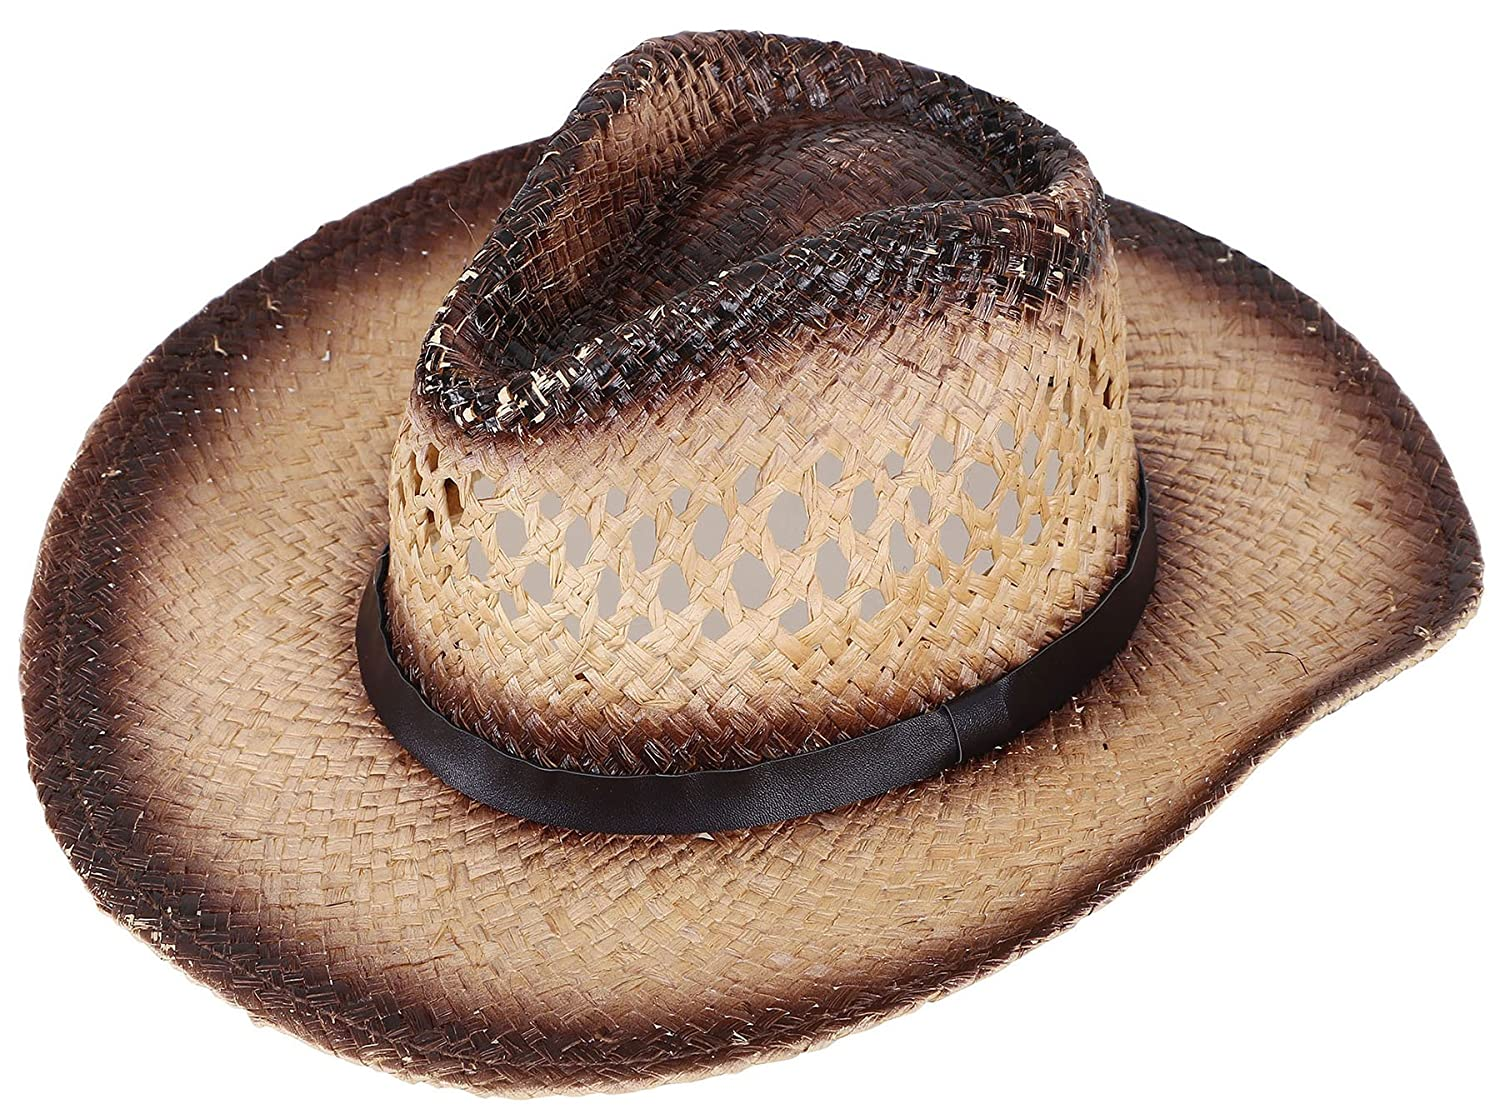 e035a7641e6 Mens Straw Cowboy Hats Amazon